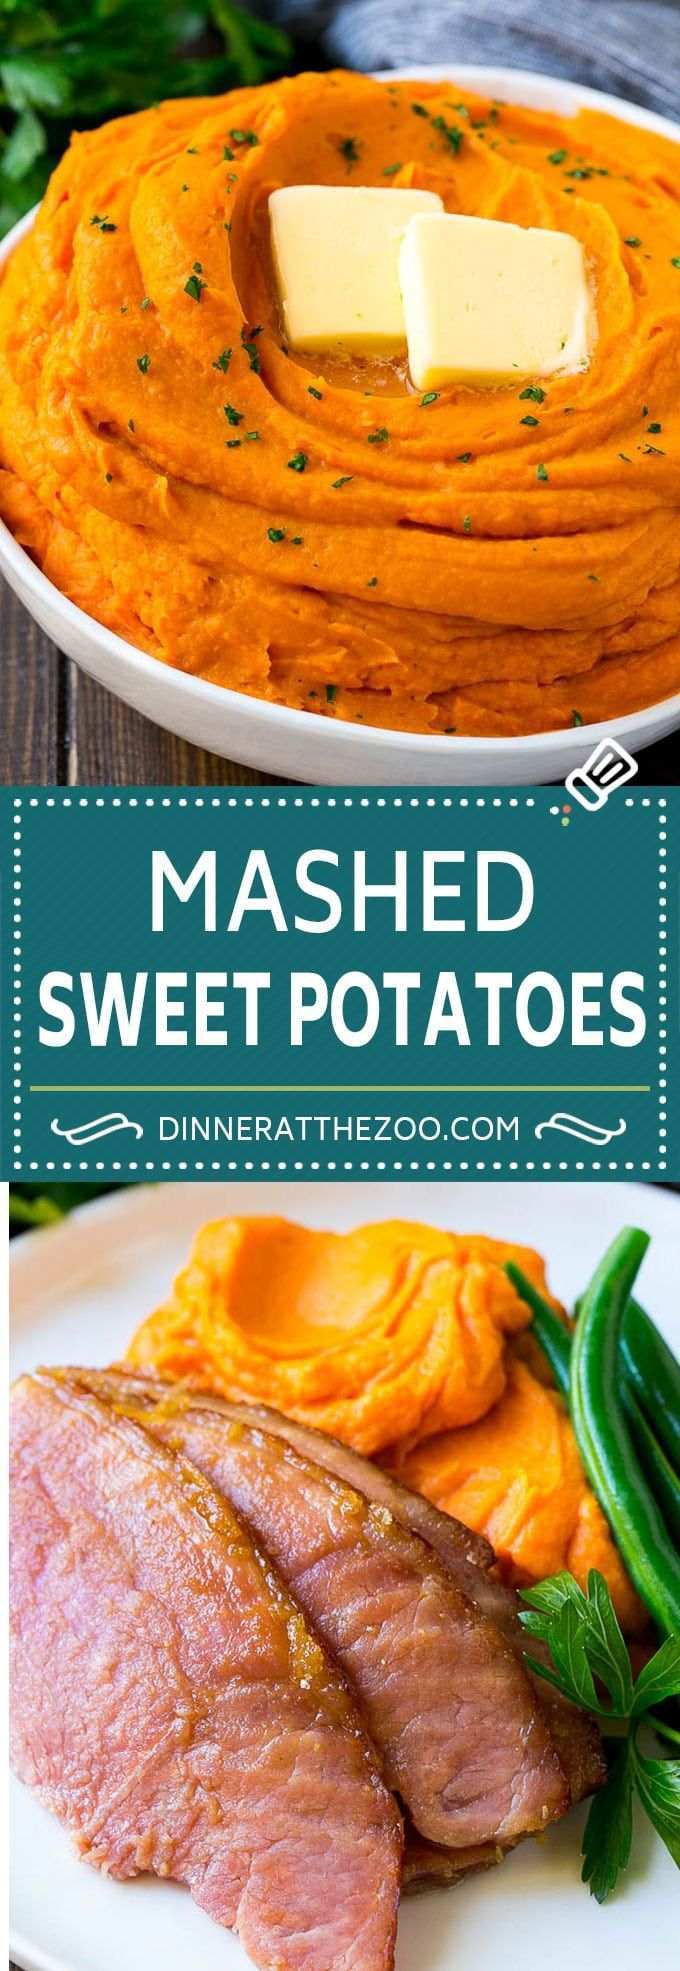 Mashed Sweet Potatoes - Dinner at the Zoo